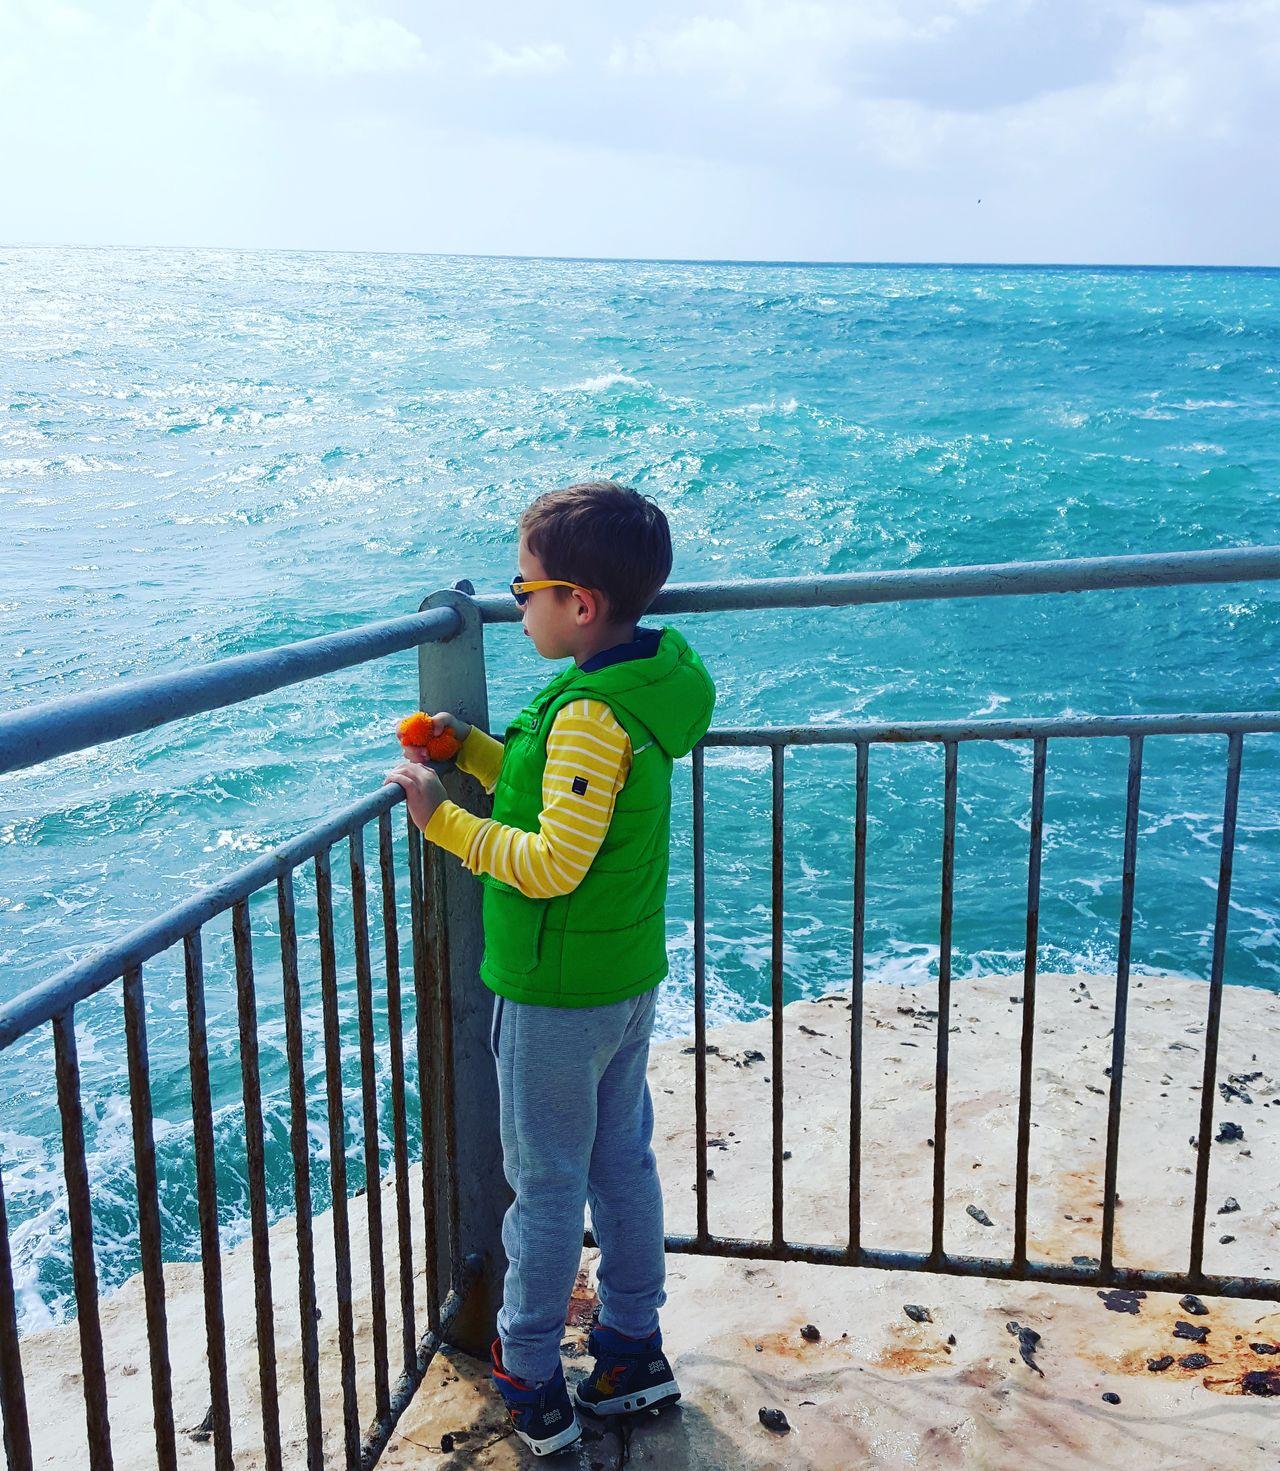 Childhood One Person Boys Children Only Outdoors People Nature Water Sky Day Israel Haifa Boy